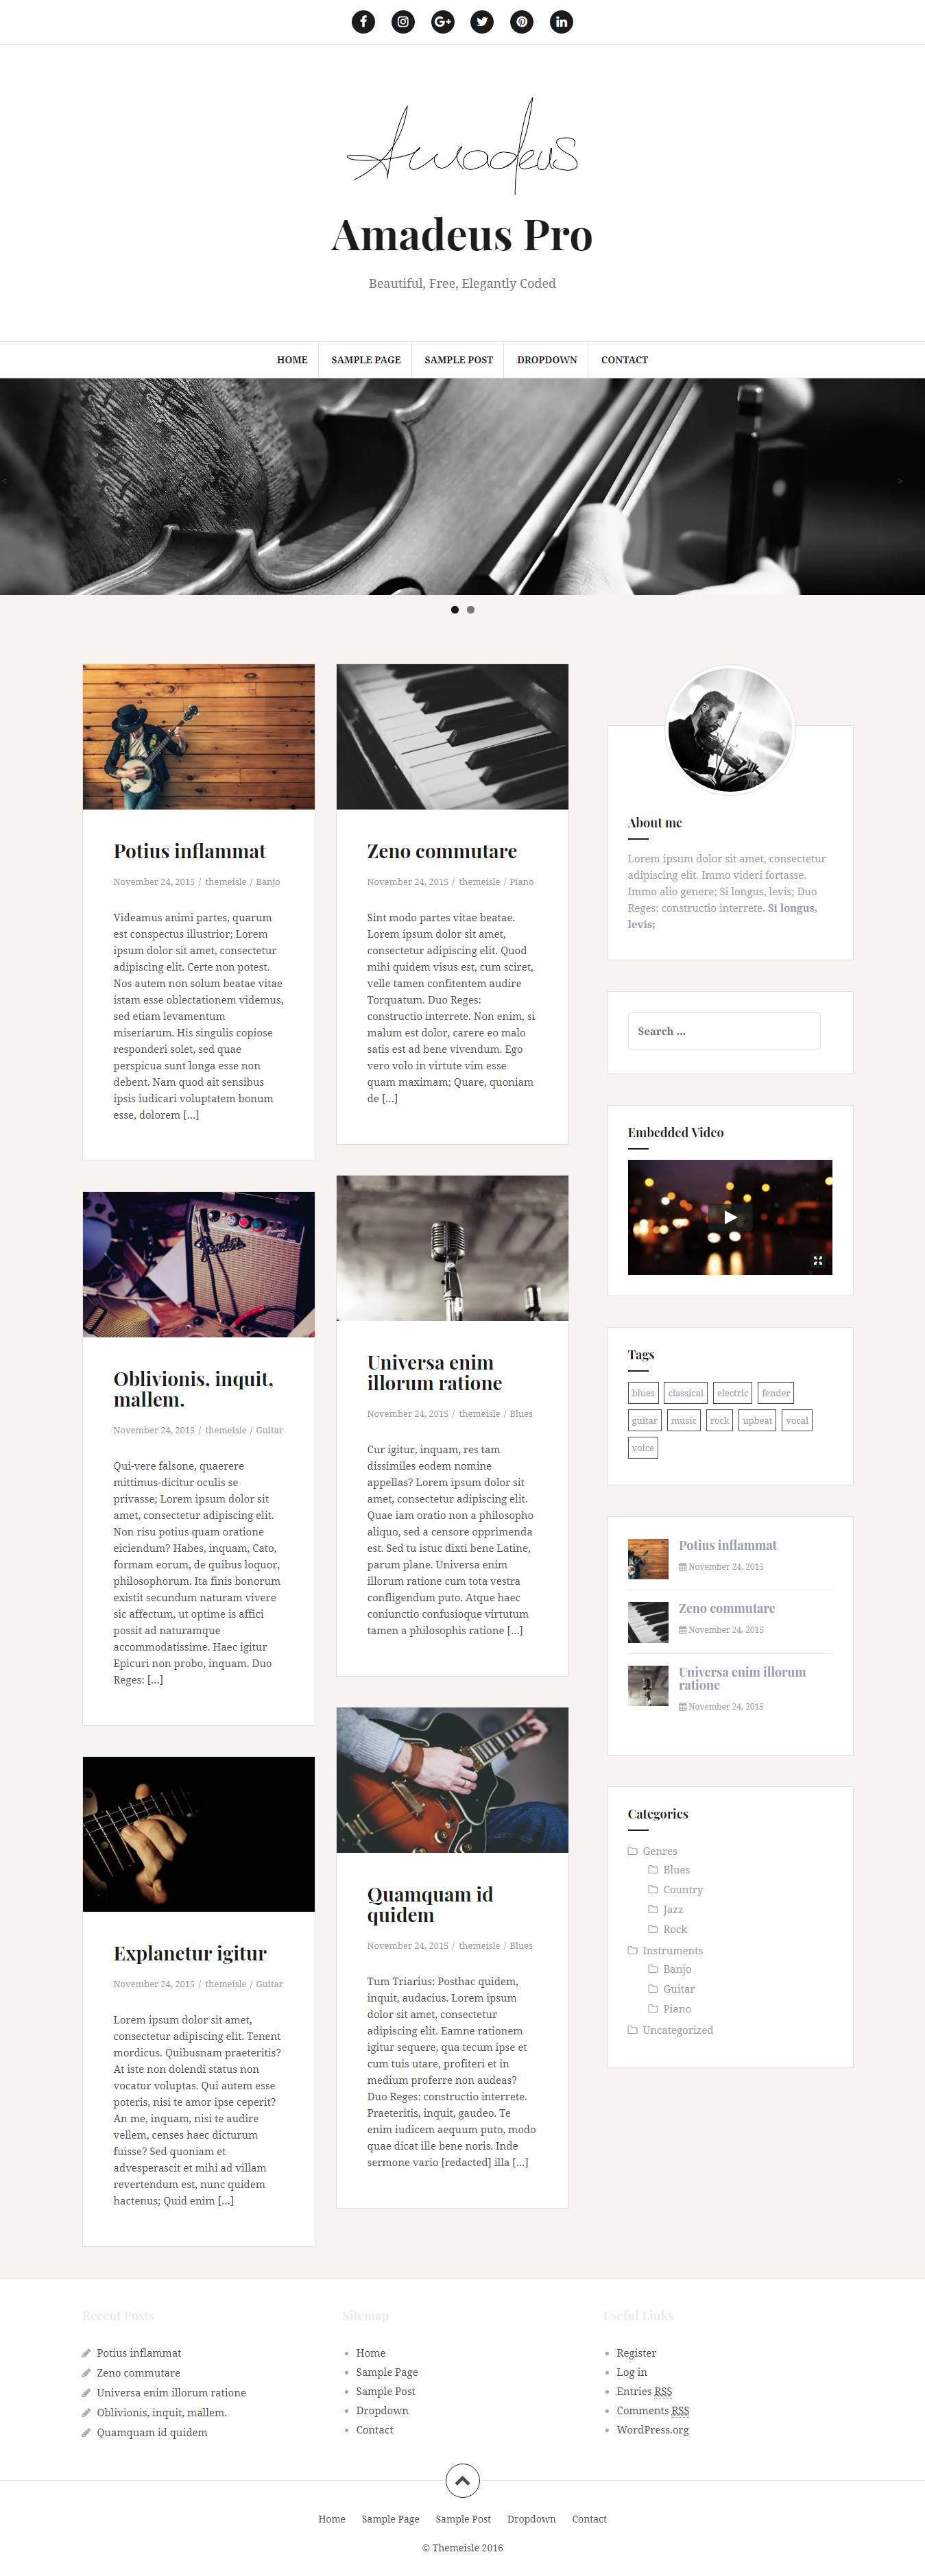 Premium Blog Templates WordPress